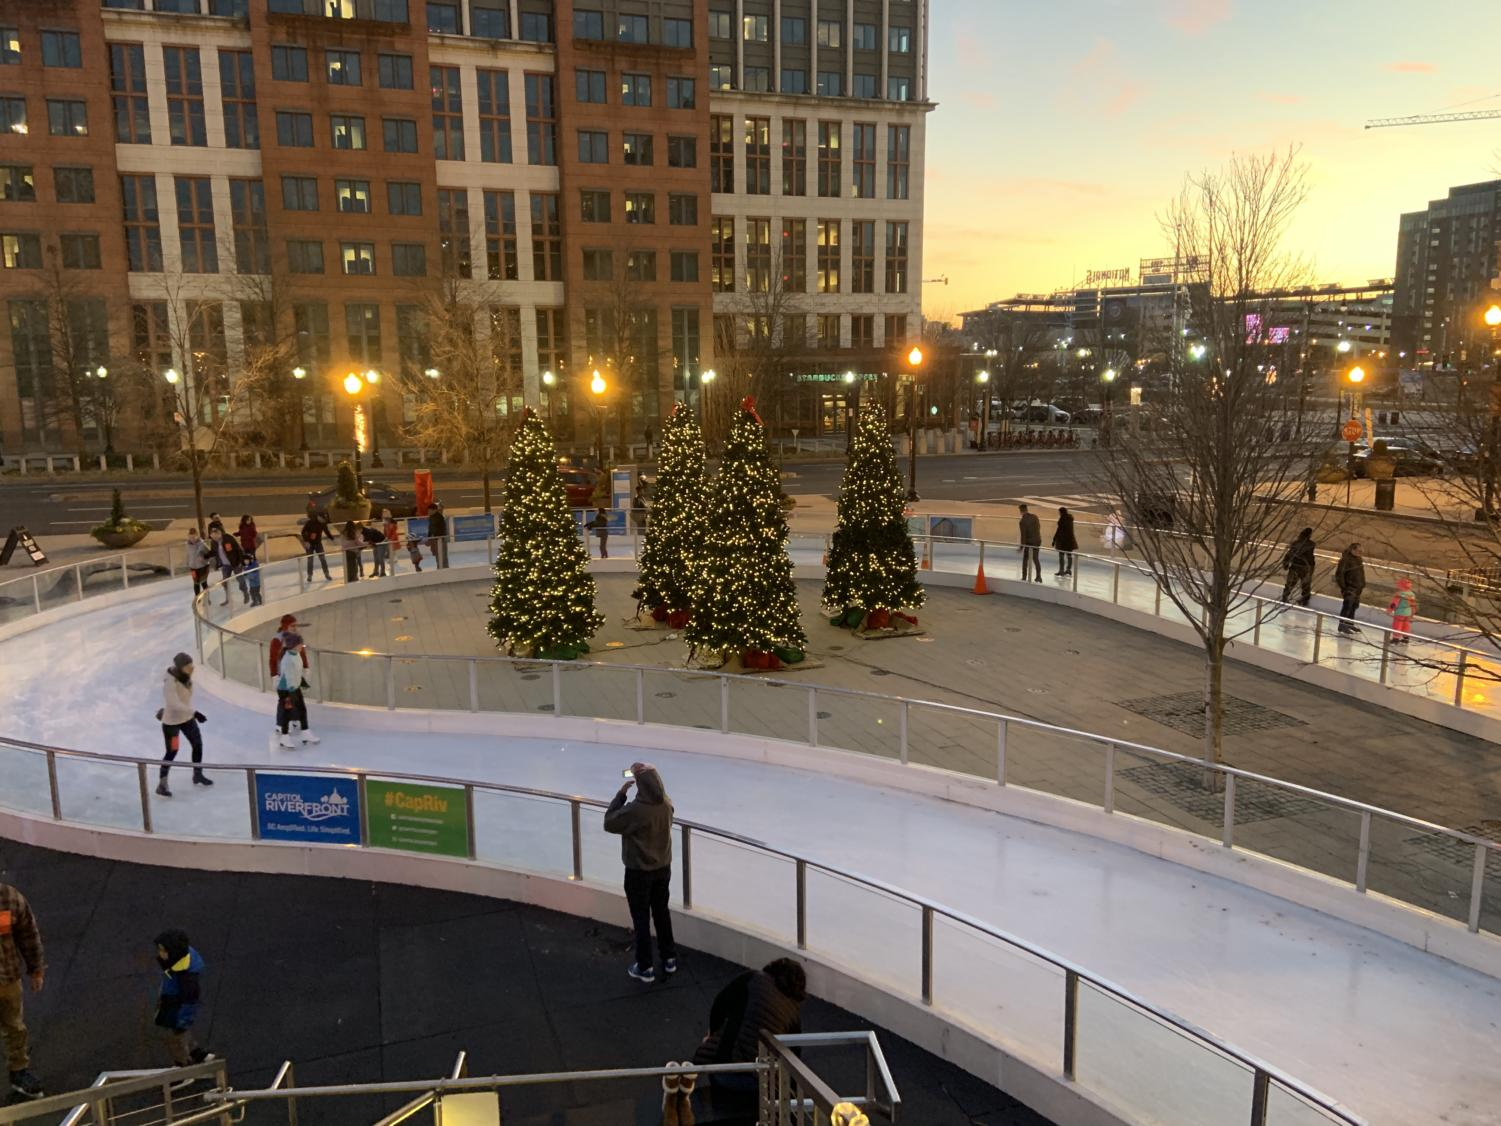 Beautiful views of the figure-8 shaped ice skating rink in Canal Park.